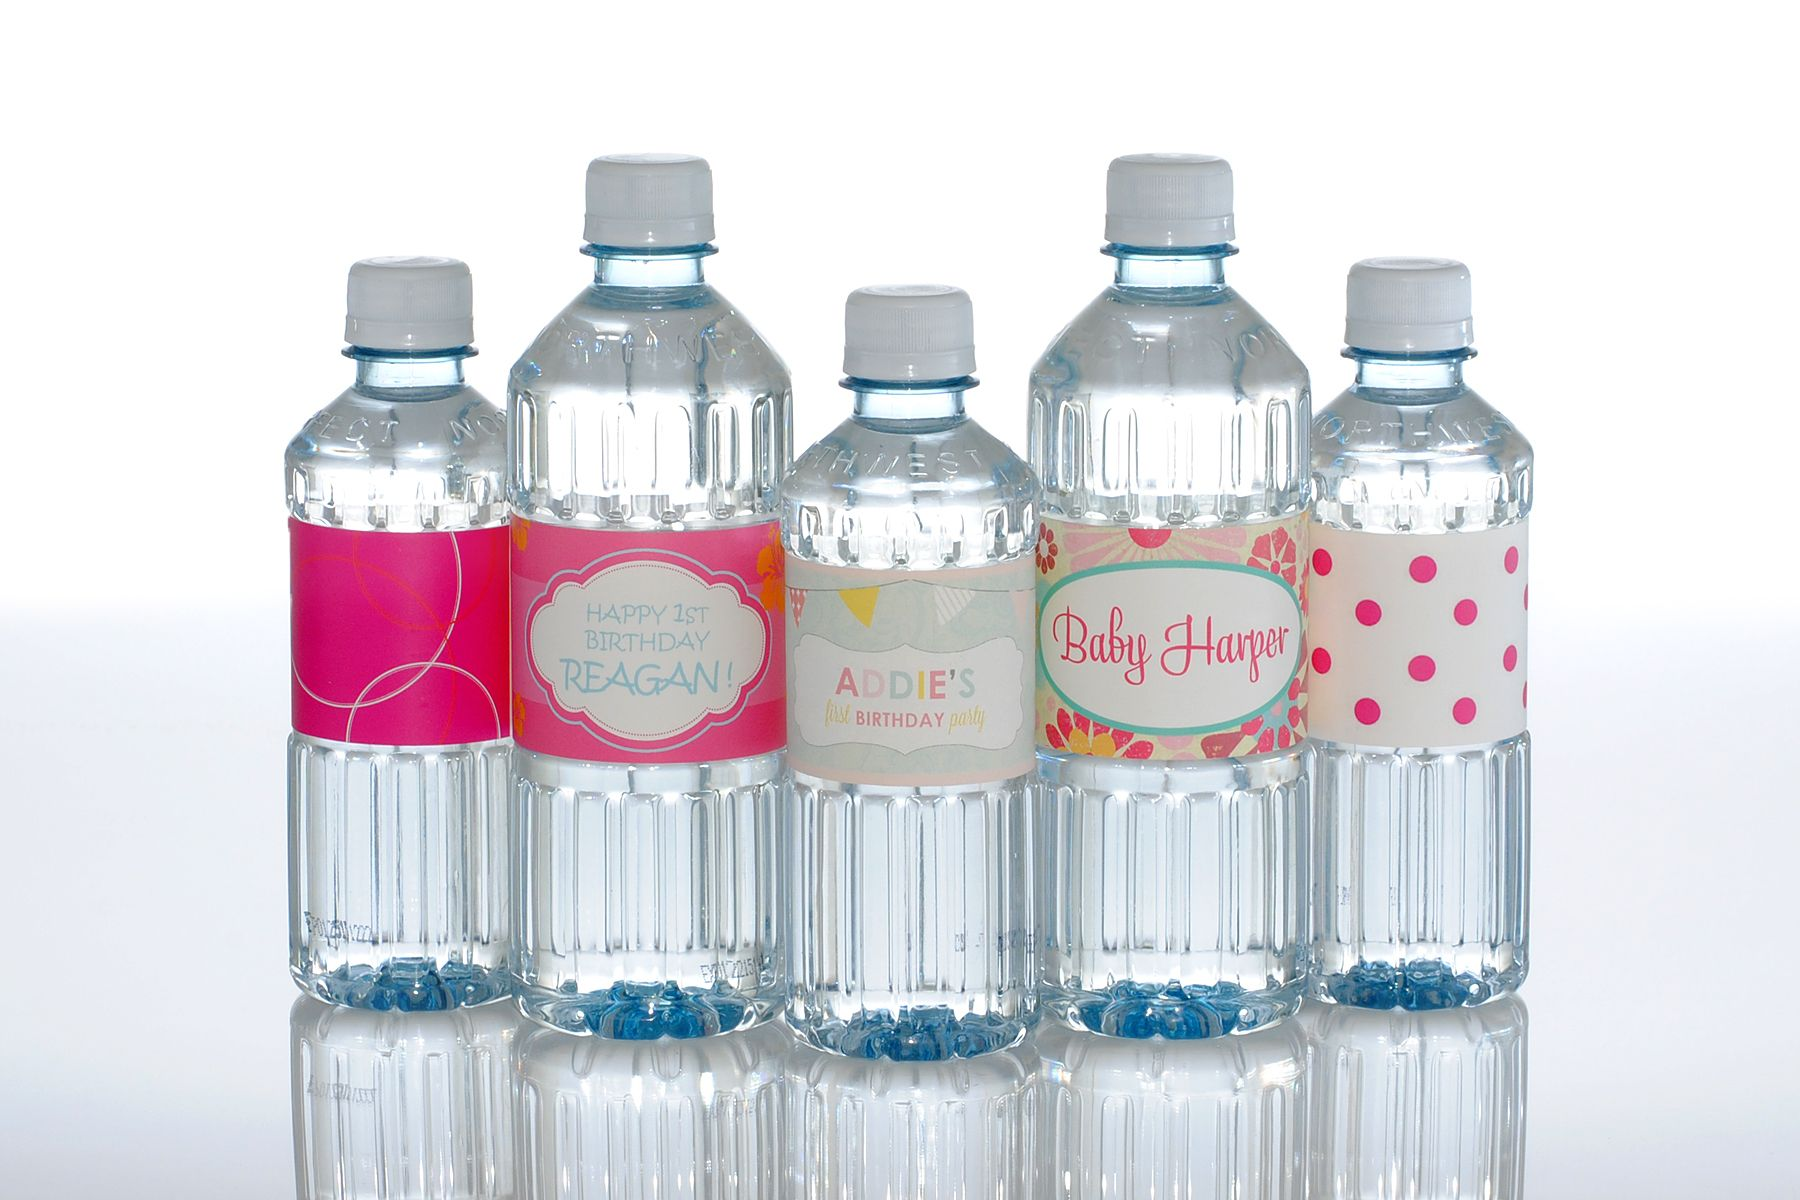 Birthday bottled water create your own design with text